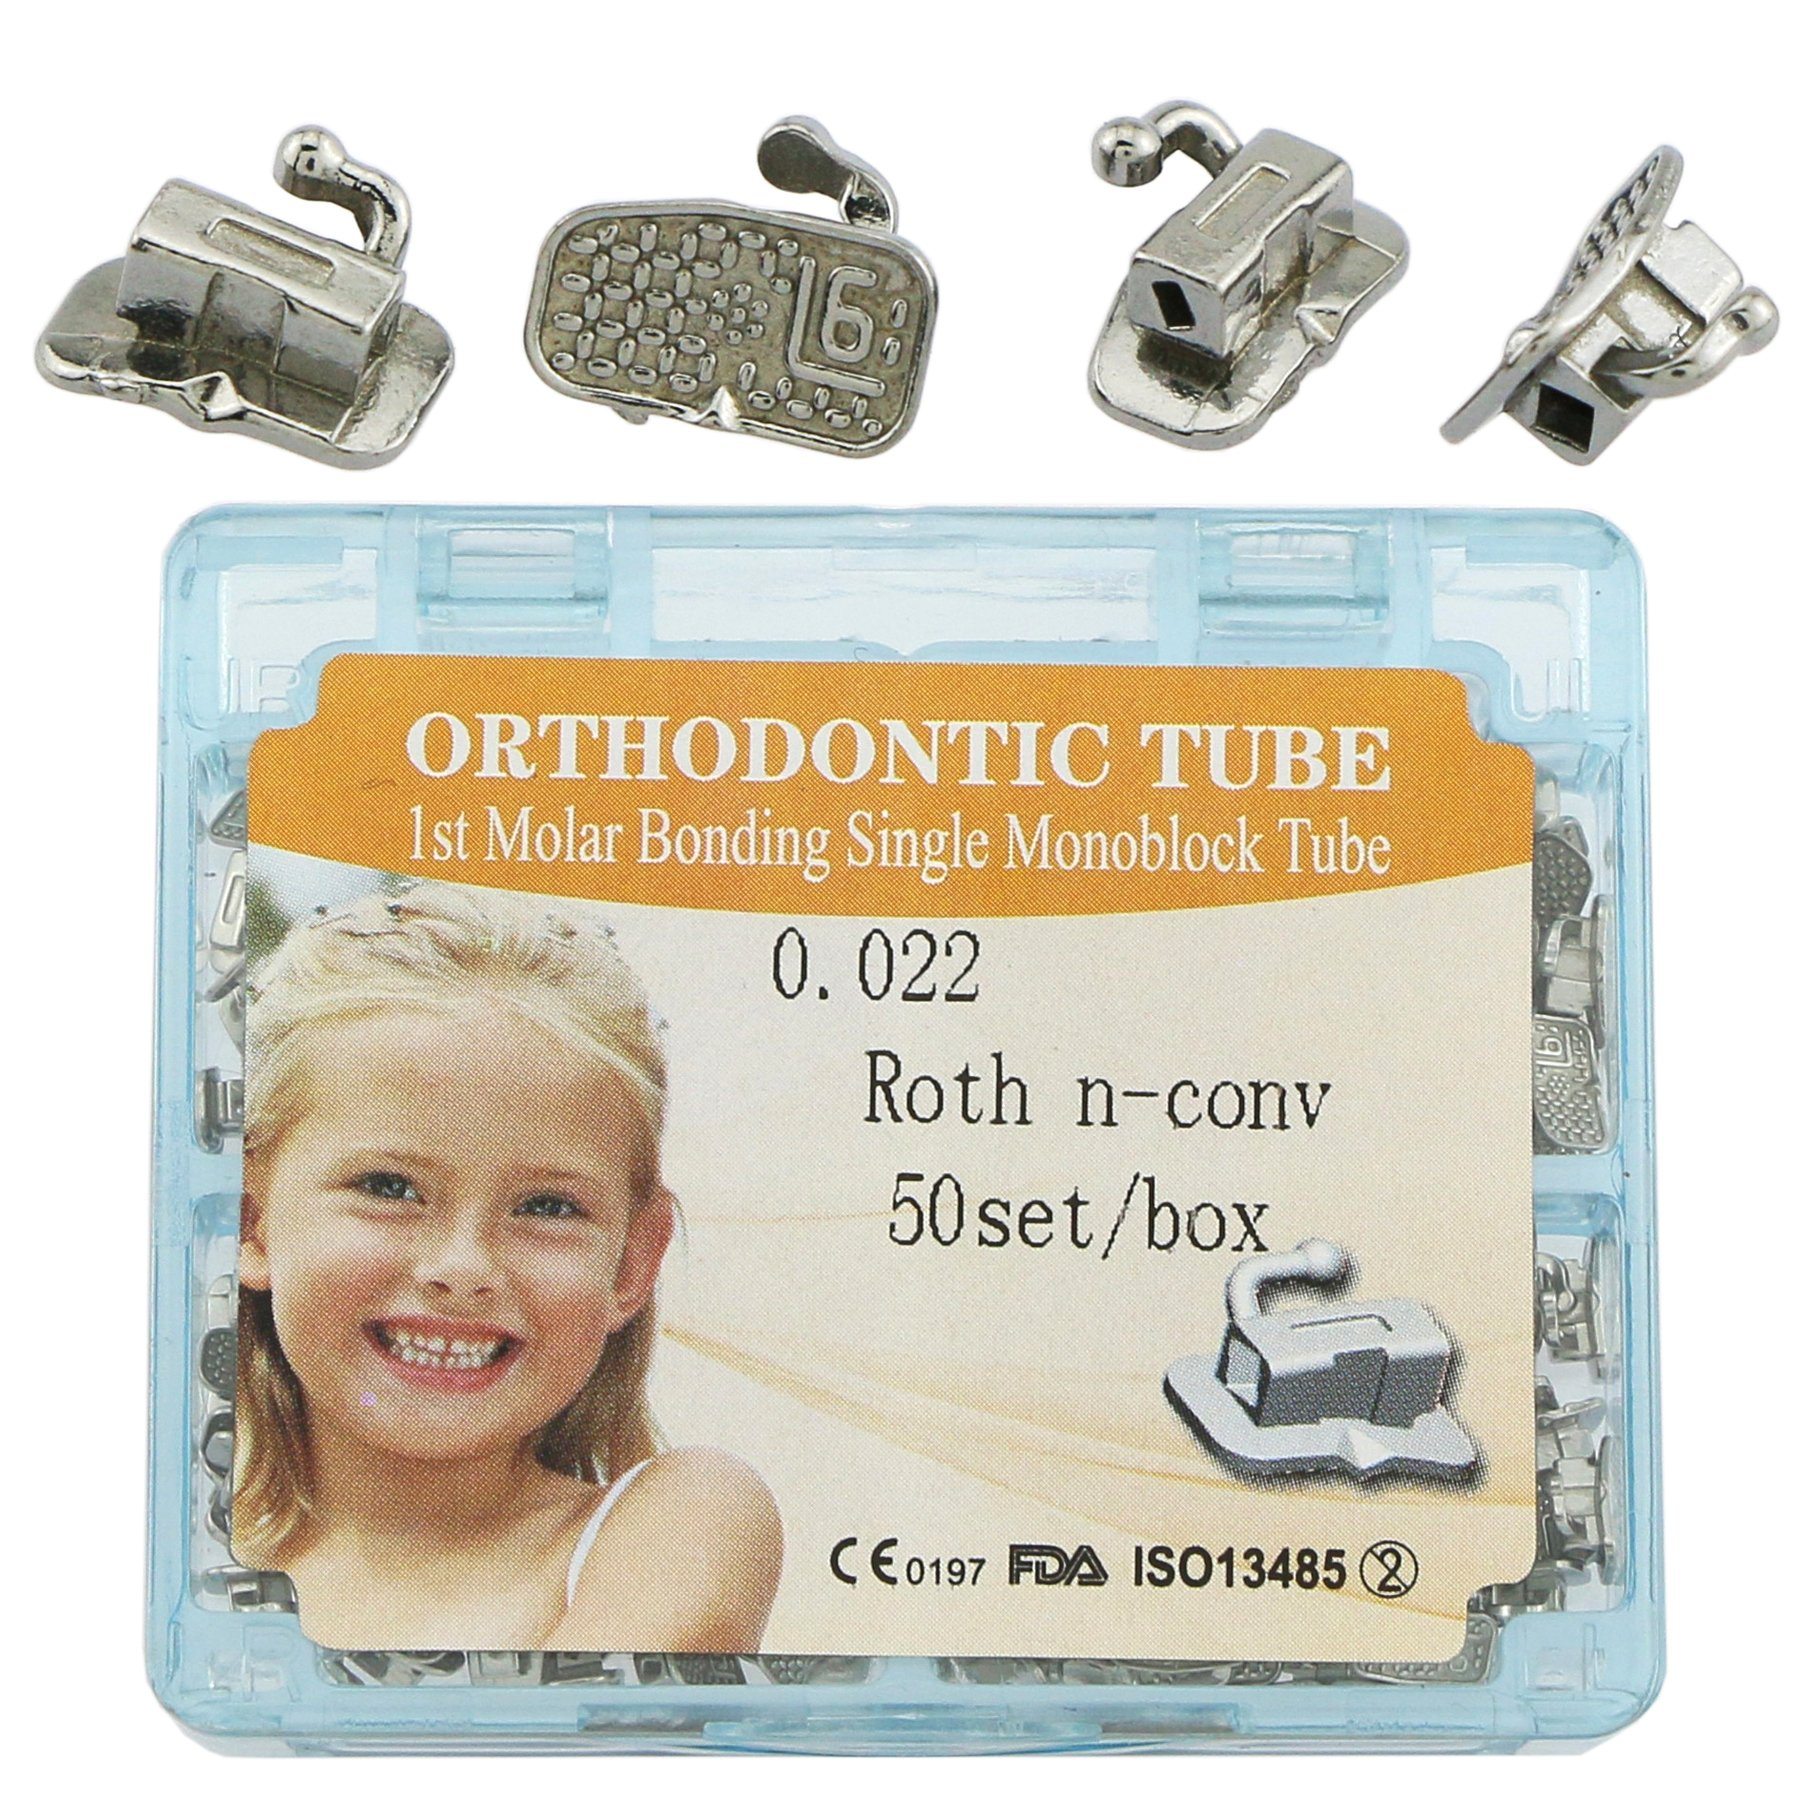 200 Pieces of Orthodontic Tubes First Molar Dental Roth 0.022 Bonding non-convertible Monoblock Single Buccal tubes 50 Sets (FDA PROVED)